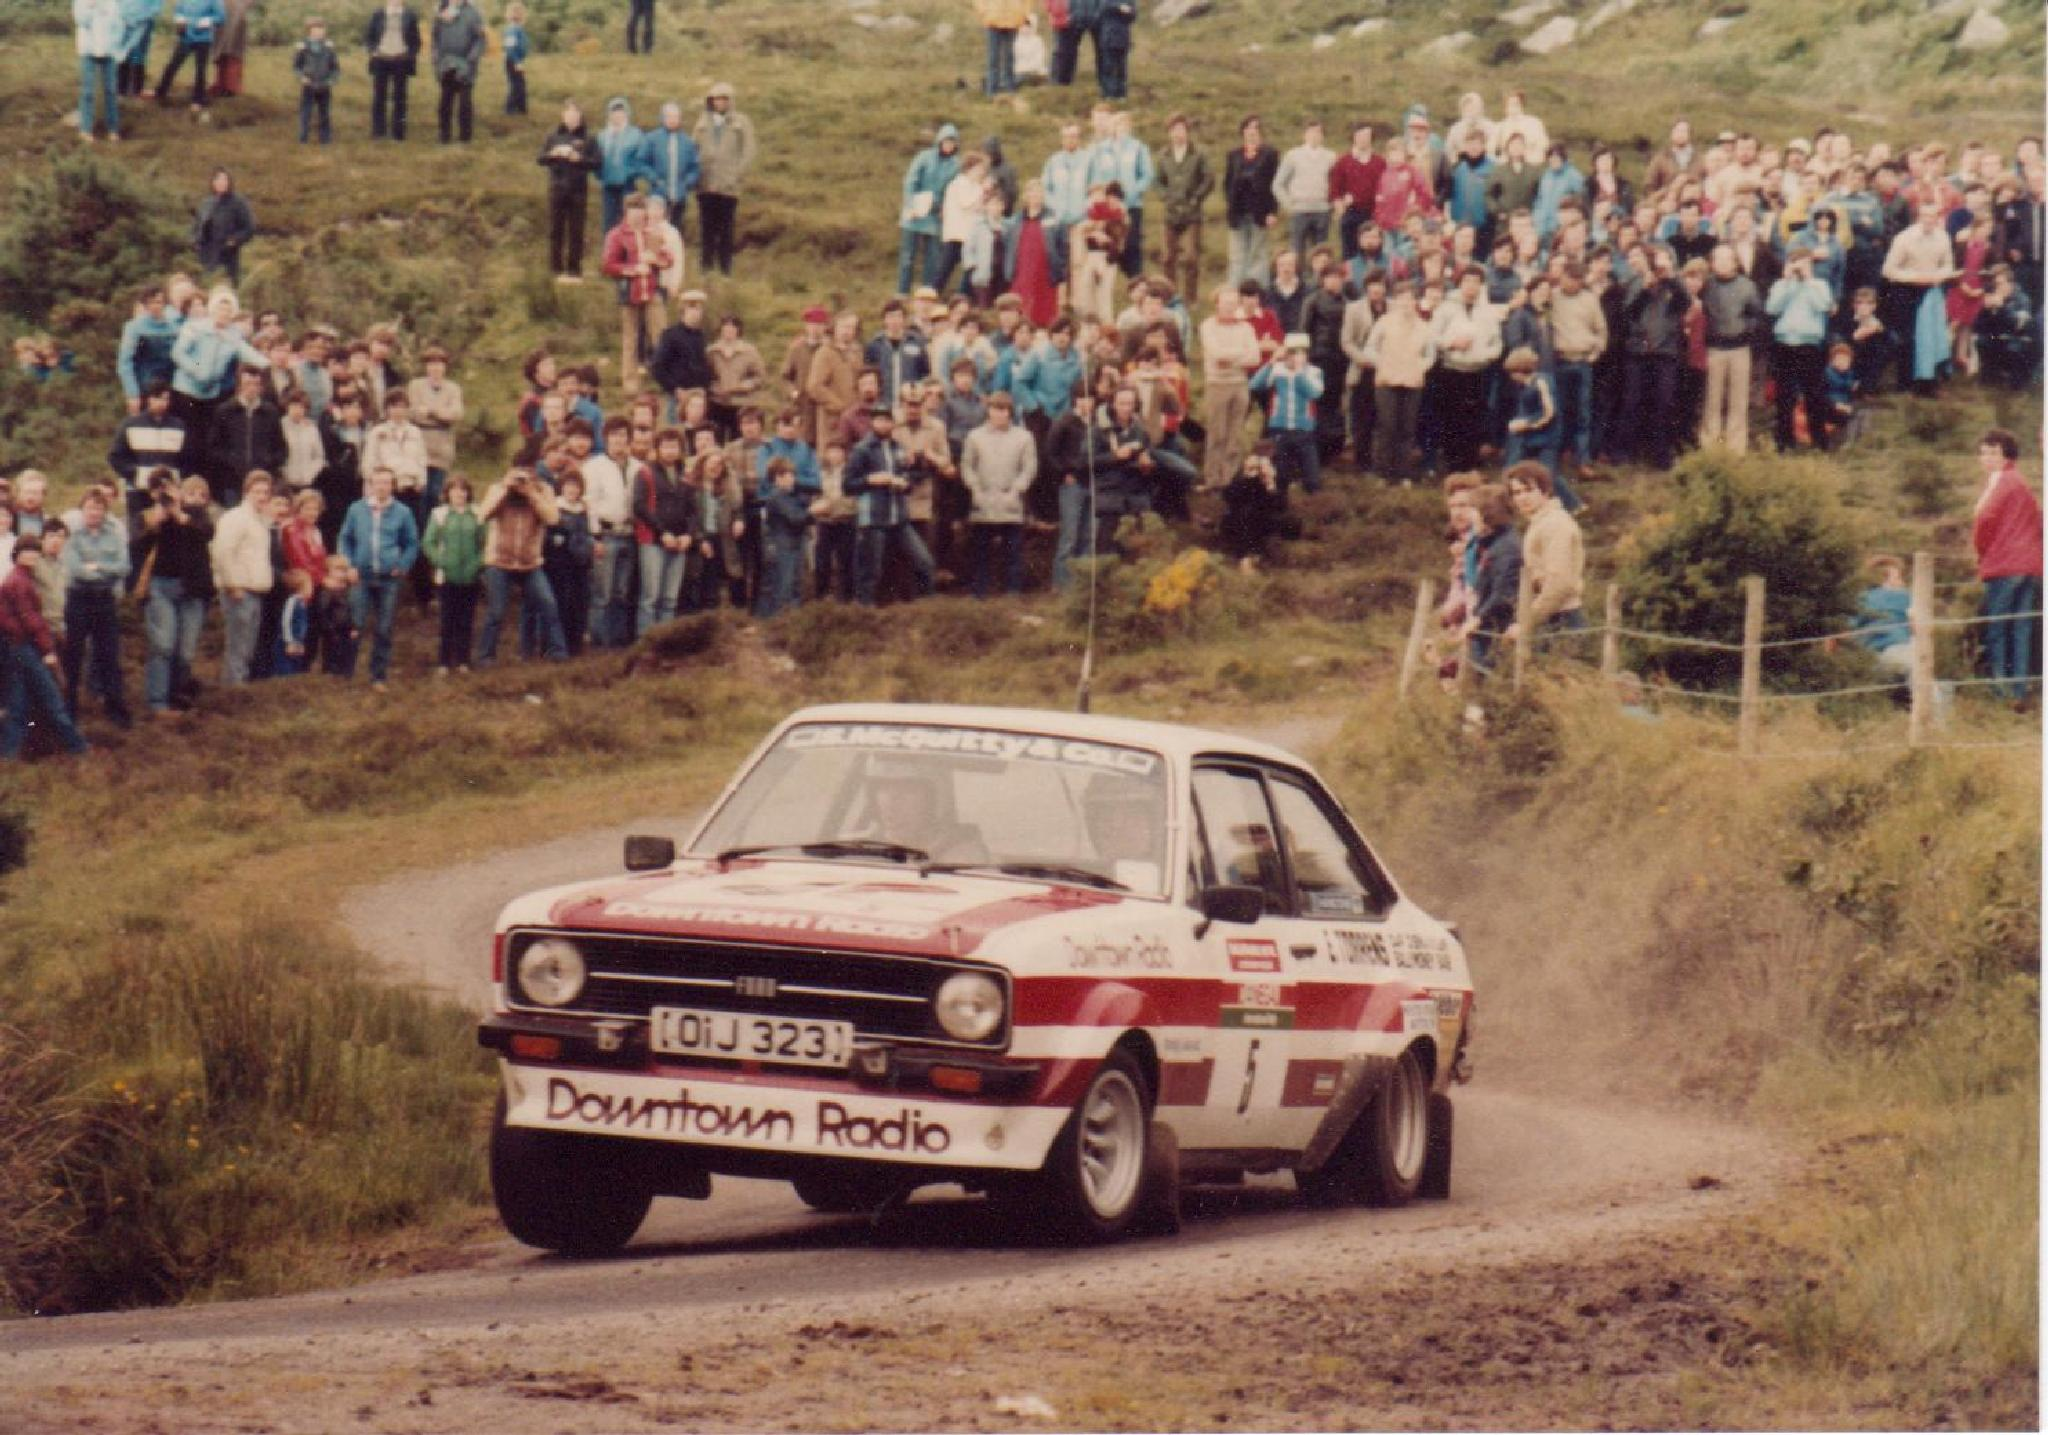 Donegal international Rally  by andy.morrow.315